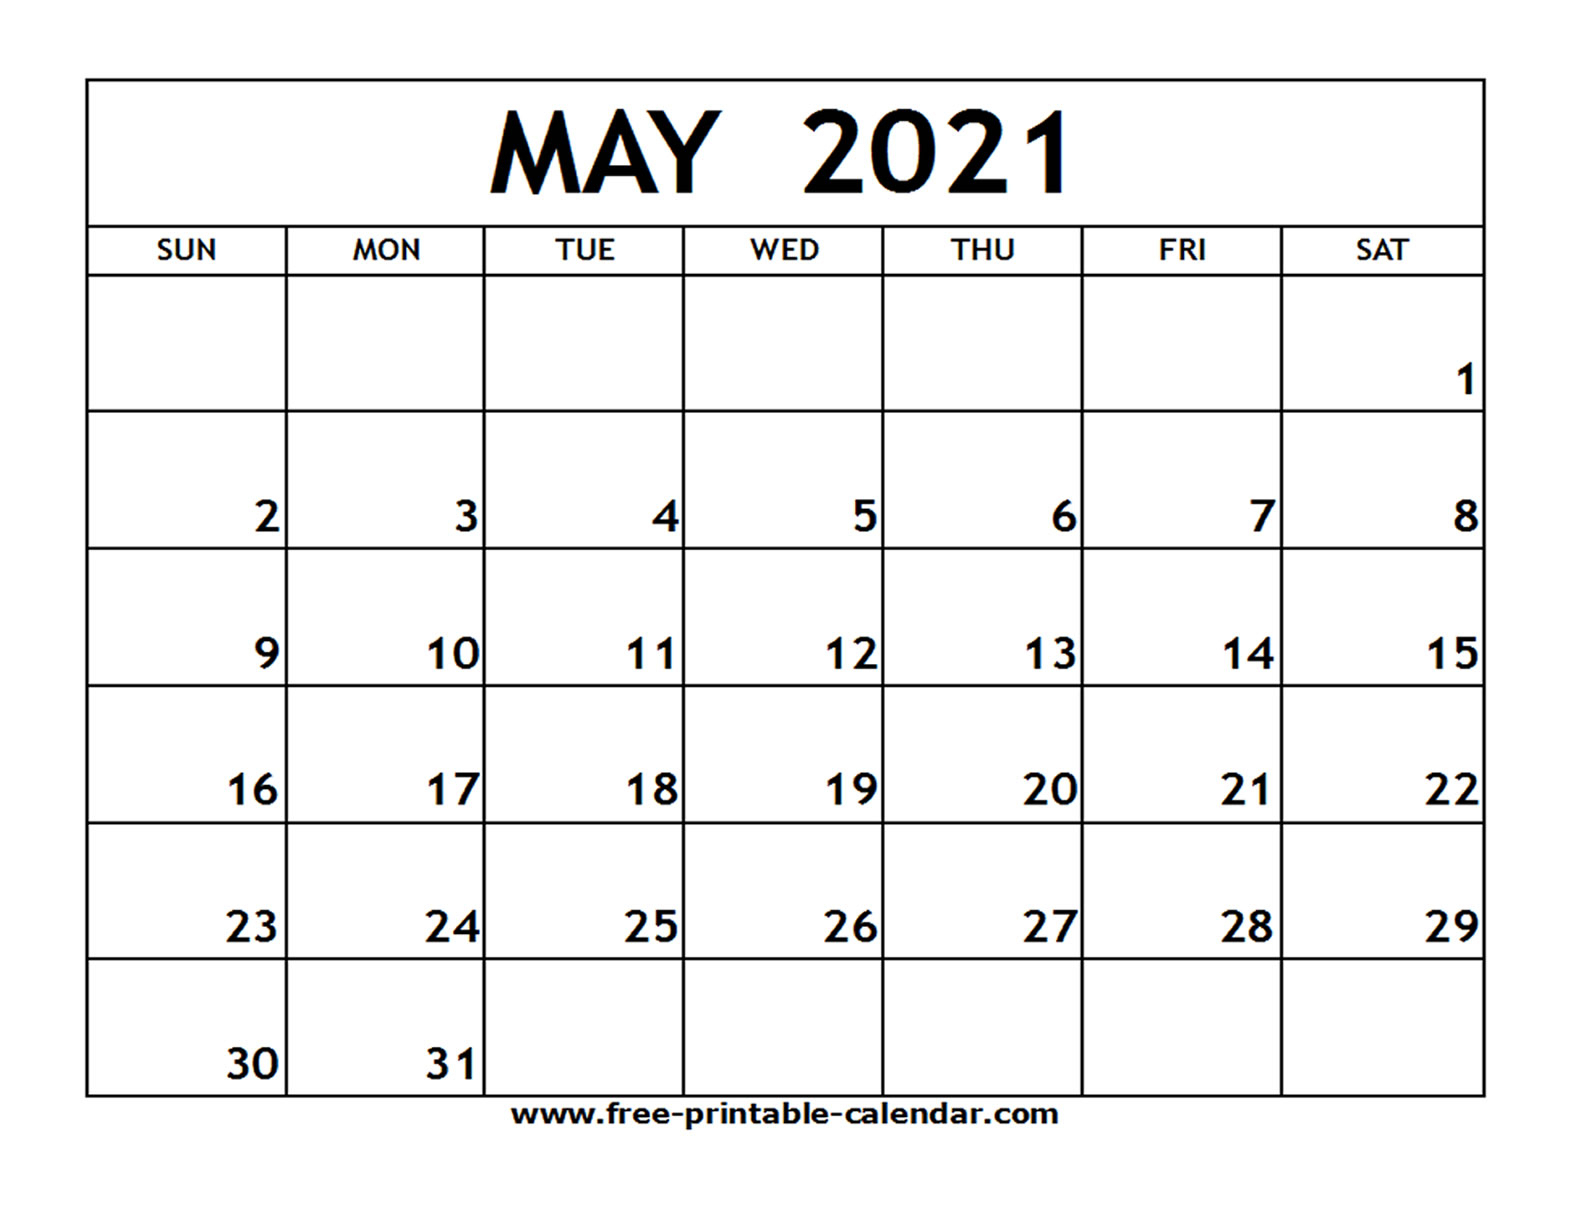 Calendar 2021 Free Printable With Note Space